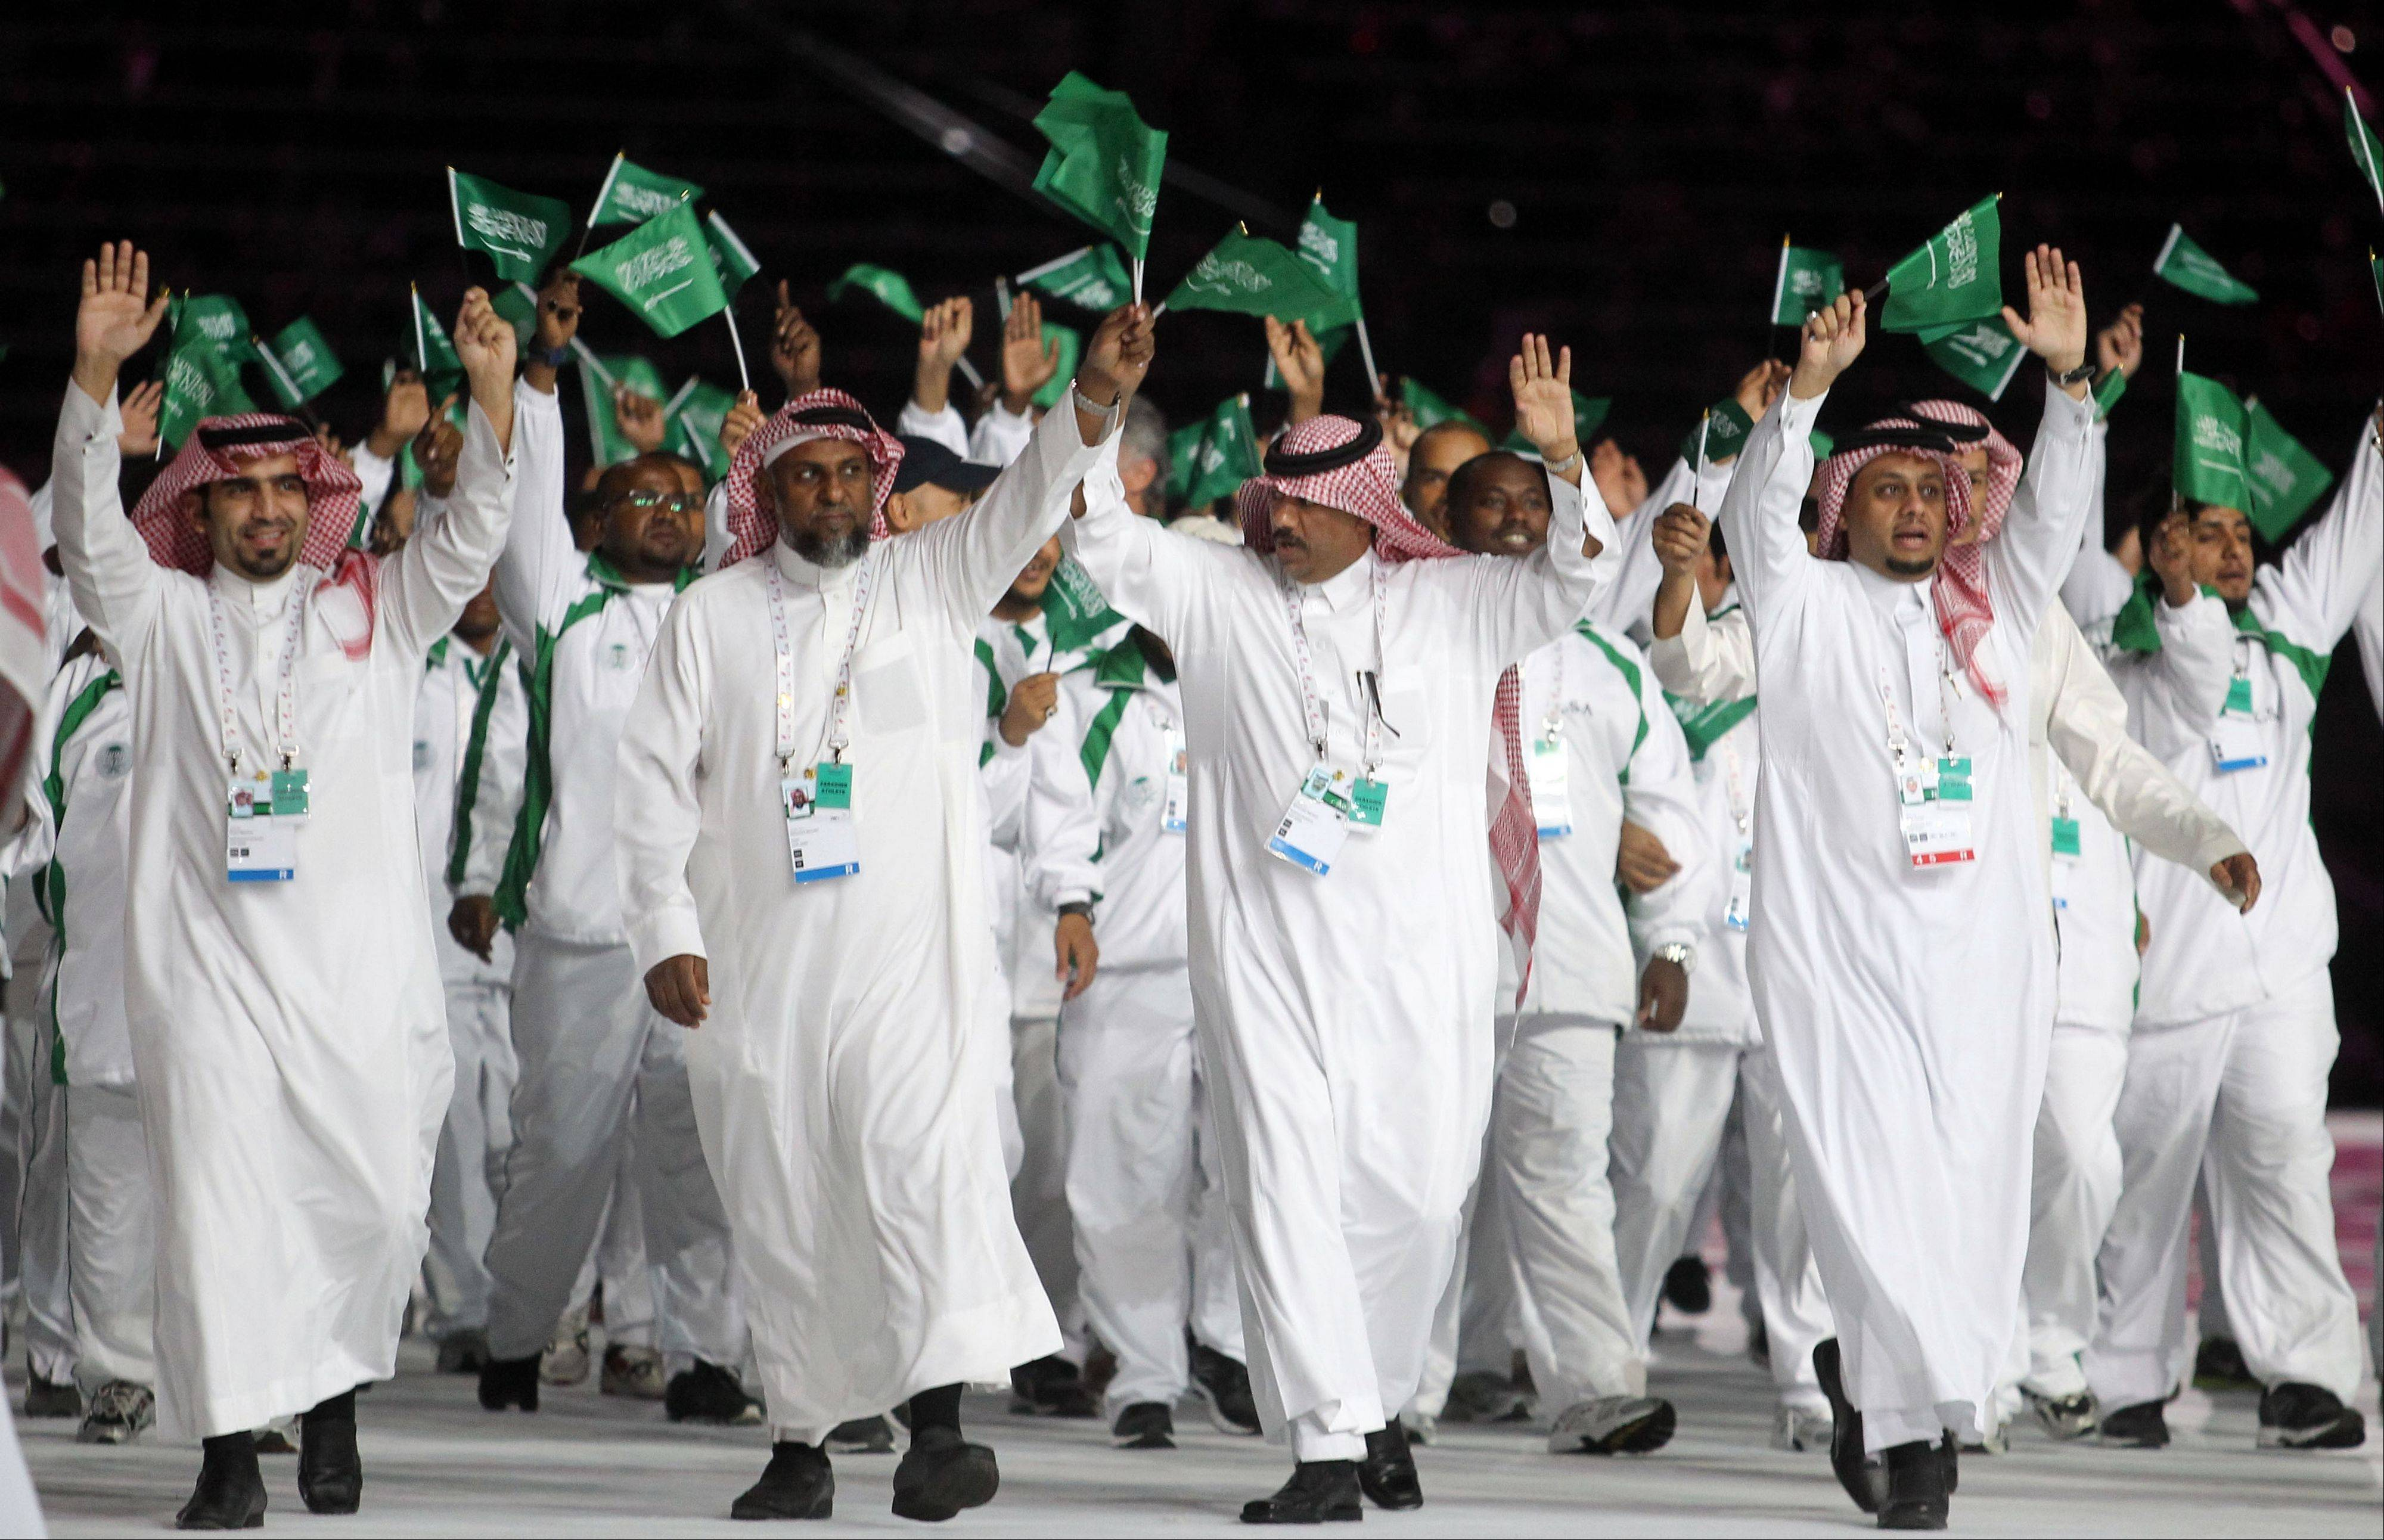 In this Friday, Dec. 9, 2011 file photo, members of Saudi Arabia team take part in the opening ceremony of the pan-Arab Games at Sheikh Khalifa stadium in the Qatari capital Doha. These Middle Eastern countries have also only embraced women's sports in the past decade, with Saudi Arabia and Qatar sending women to the Olympics for the first time this year.